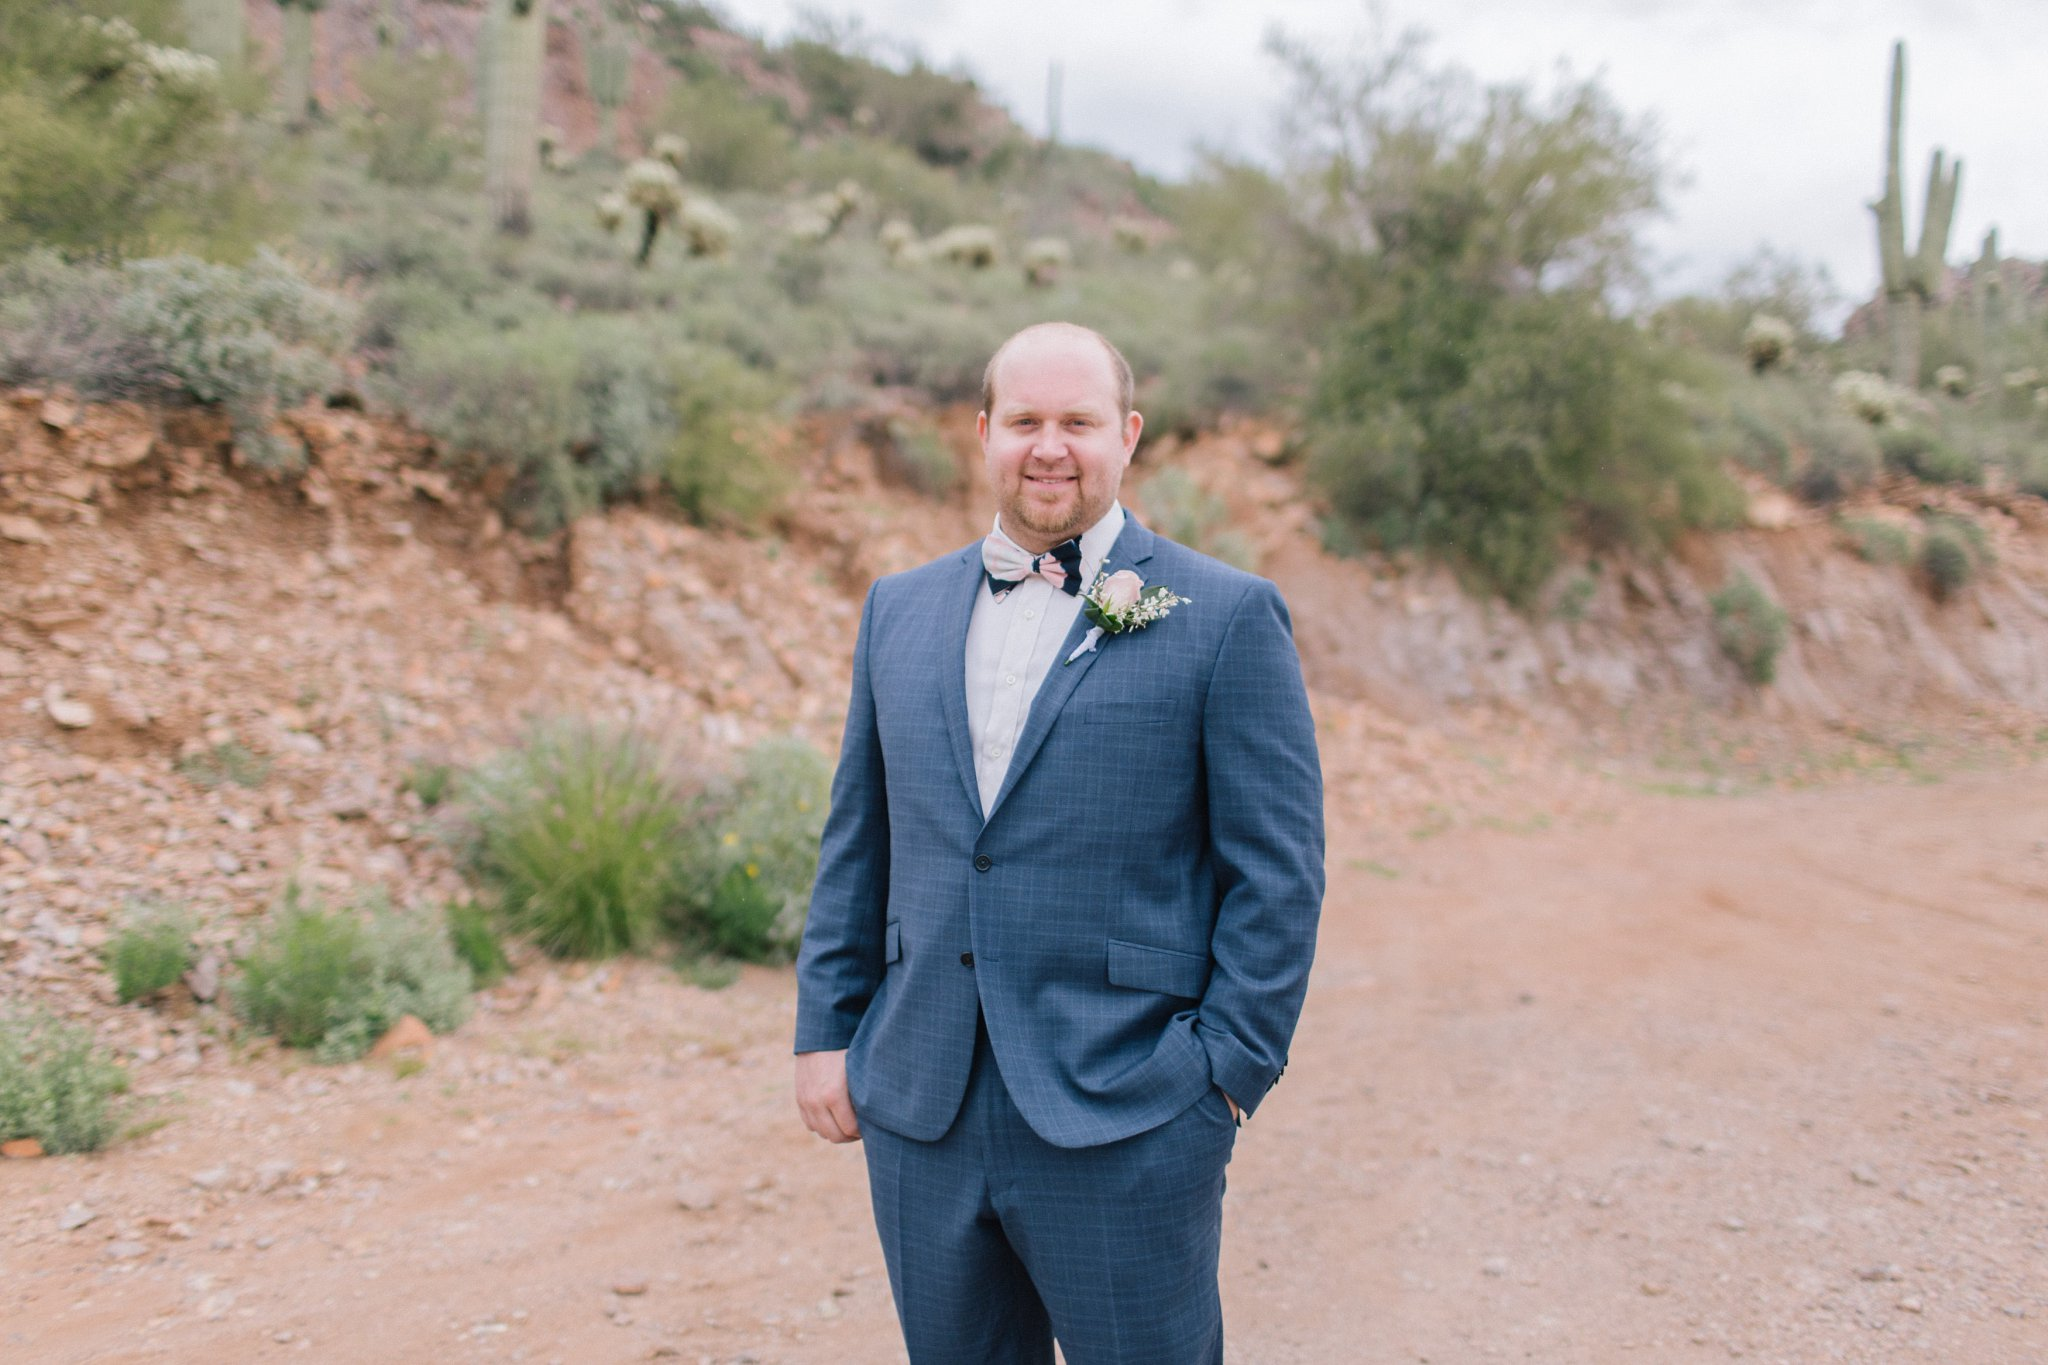 Groom in the desert at Gold Canyon Golf Resort & Spa wedding